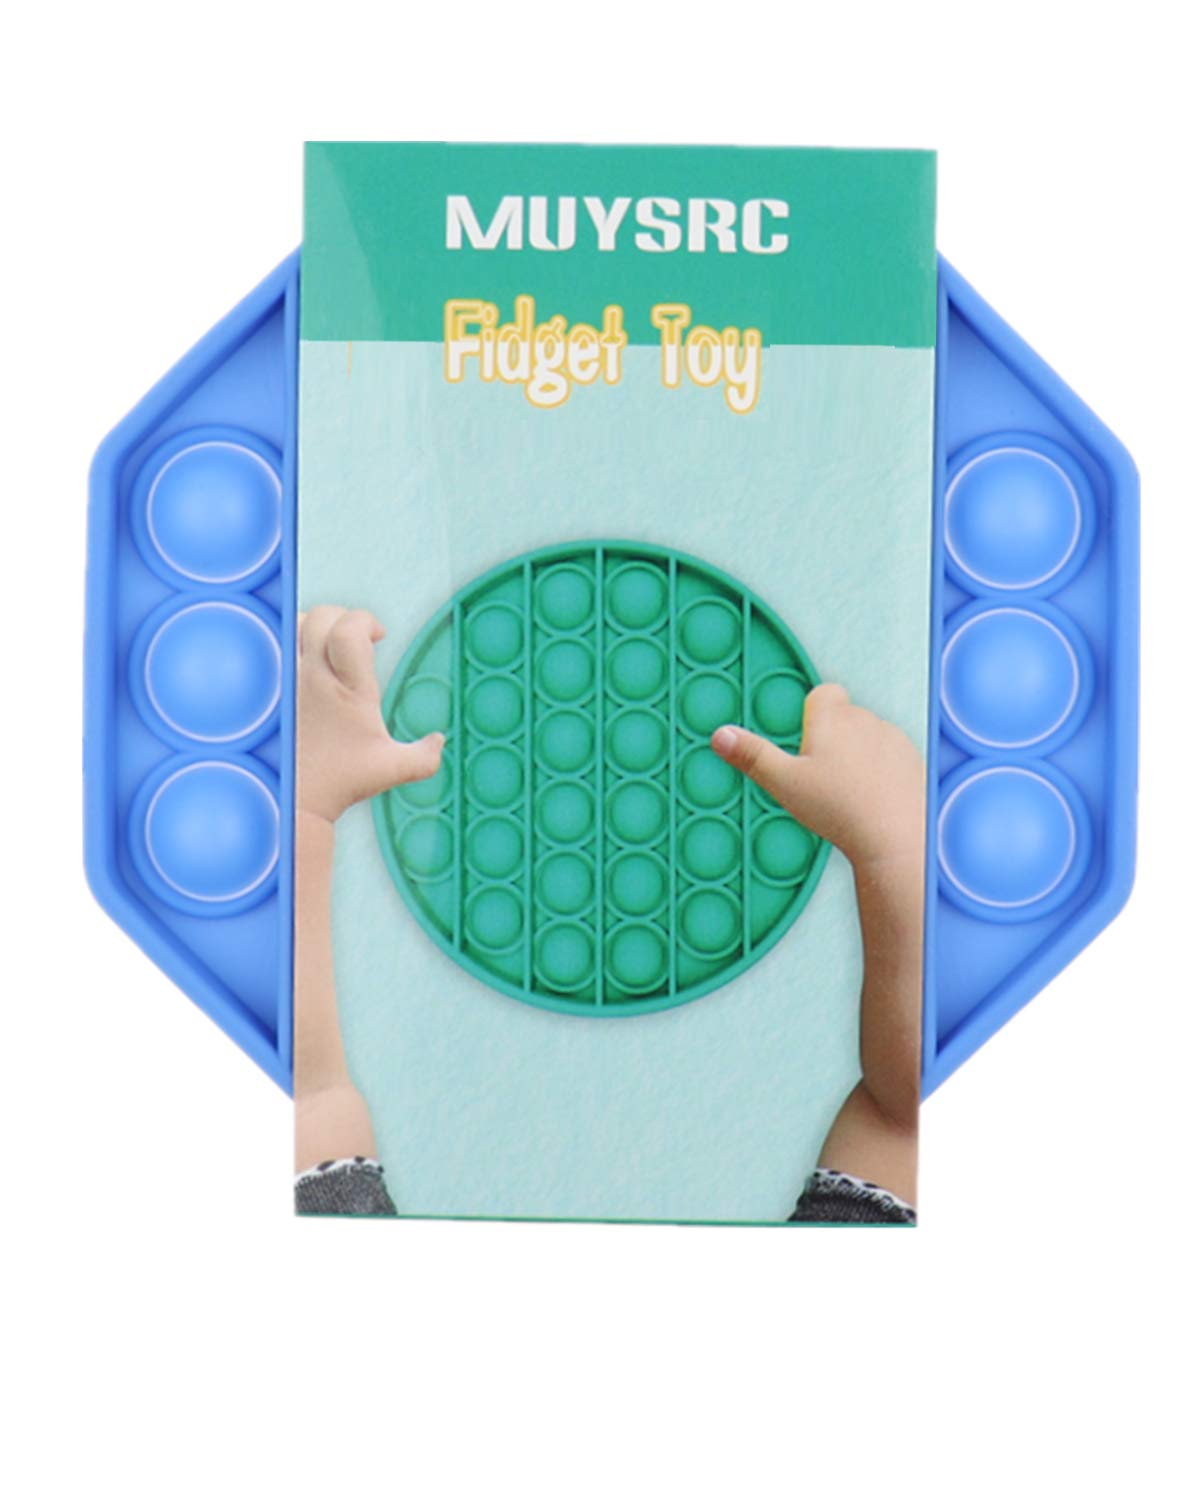 MUYSRC Popping Fidget Toy,Push Pop Bubble Sensory Fidget Toy Push Pop Fidget Toy,Push Bubble, Popping Game,Chuckle and Roar Stress Reliever,Bubble Popping